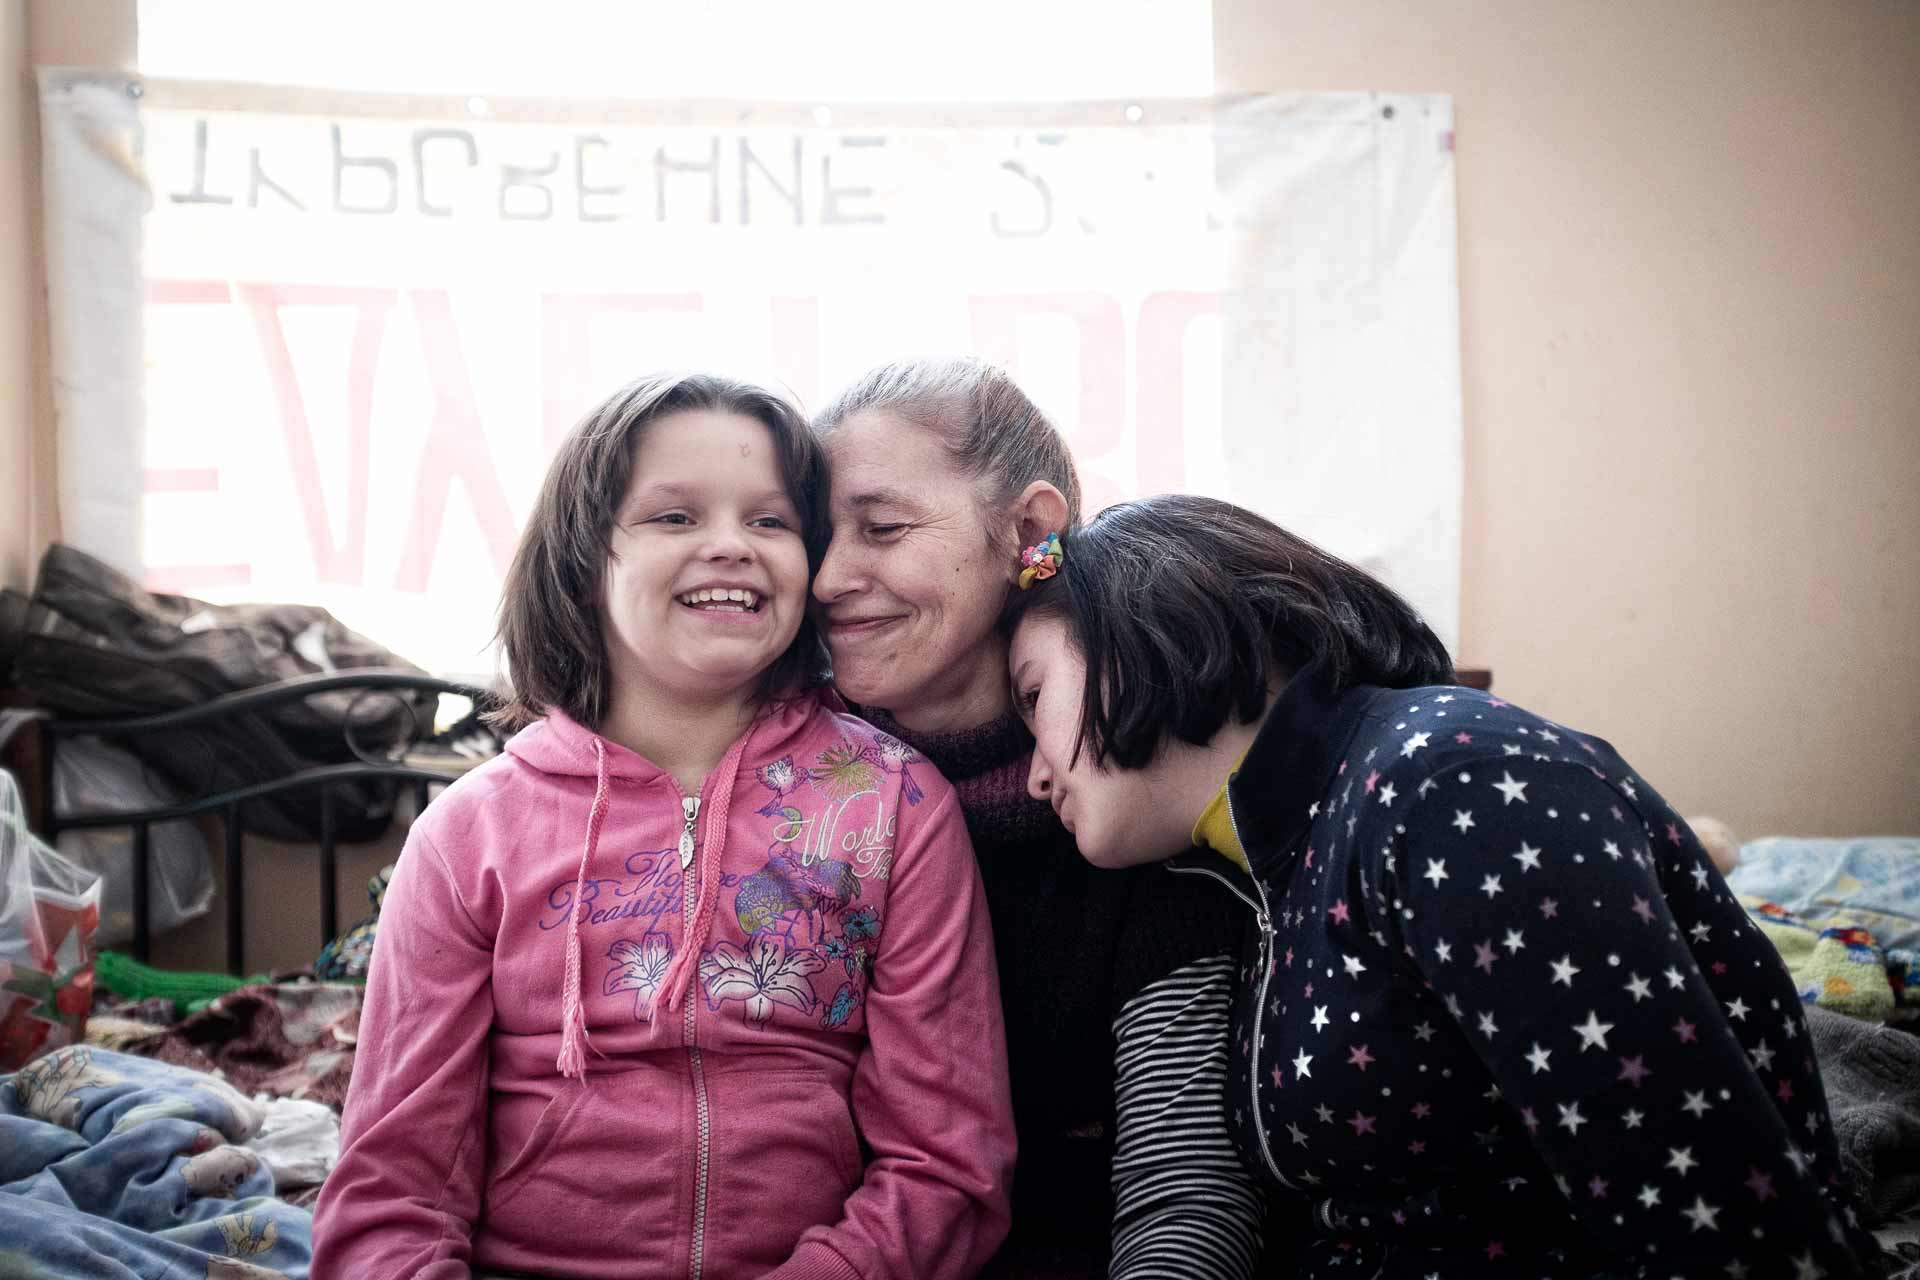 Lena, 37, from Donetsk, arrived alone with her 4 children. She now works as a street cleaner in Kramatorsk. Here with her two daughters. Valya often smile. Anna, 17, is more silent and looks sad. She aims at becoming a cook and prepares the daily meals of her family. Kramatorsk - UKRAINE